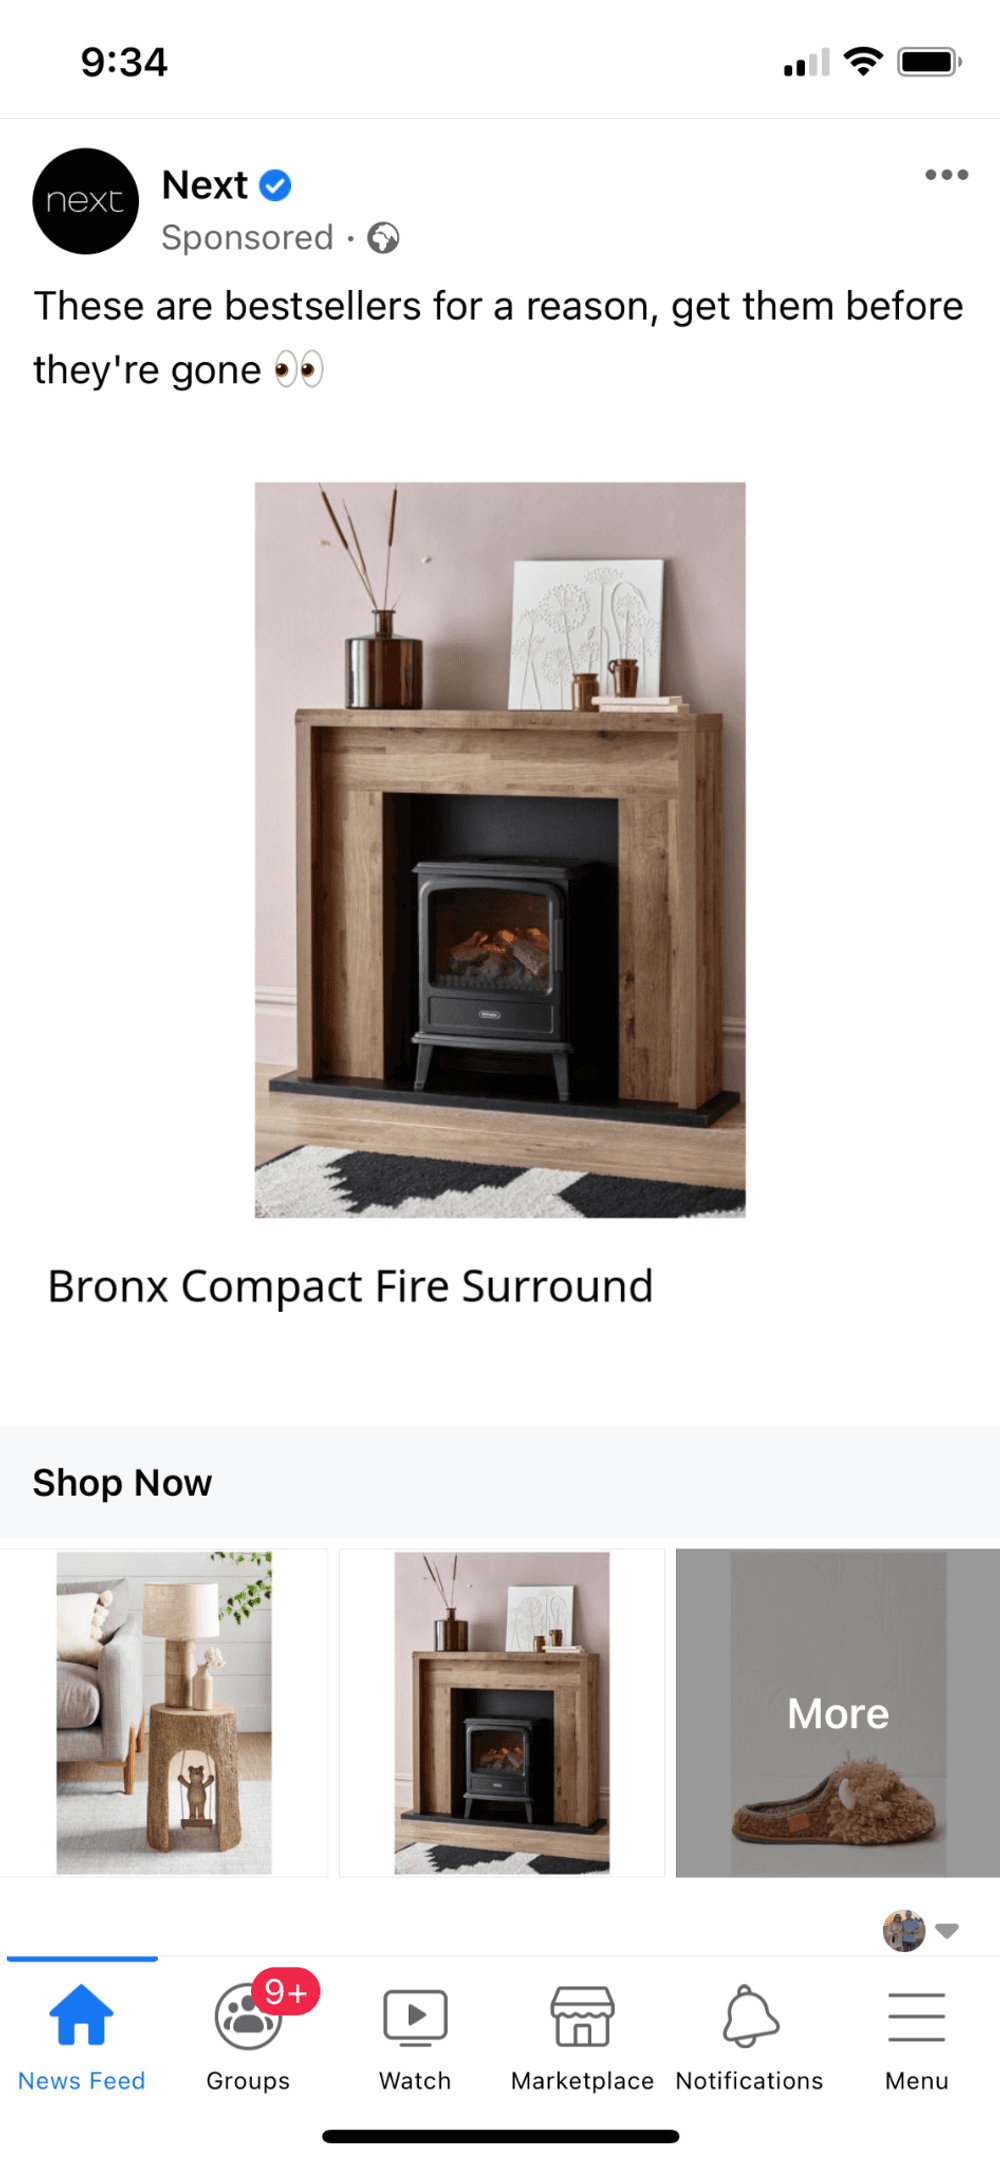 Facebook collection ad examples homeware brand